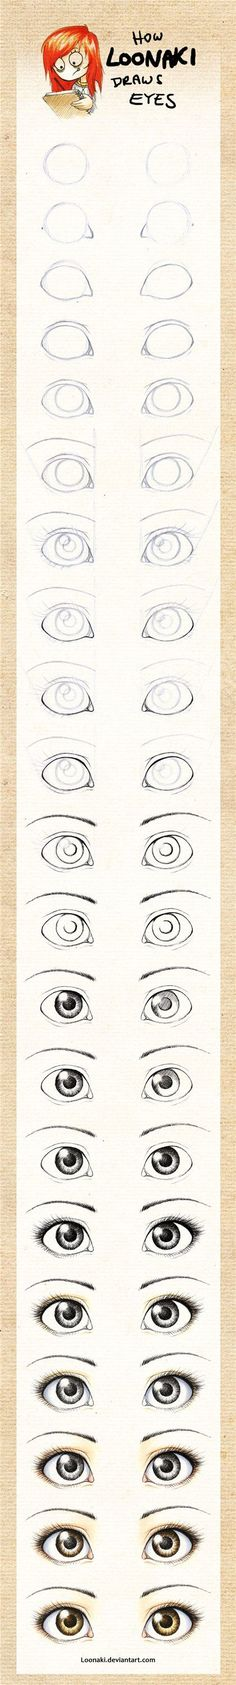 Yeux 2068